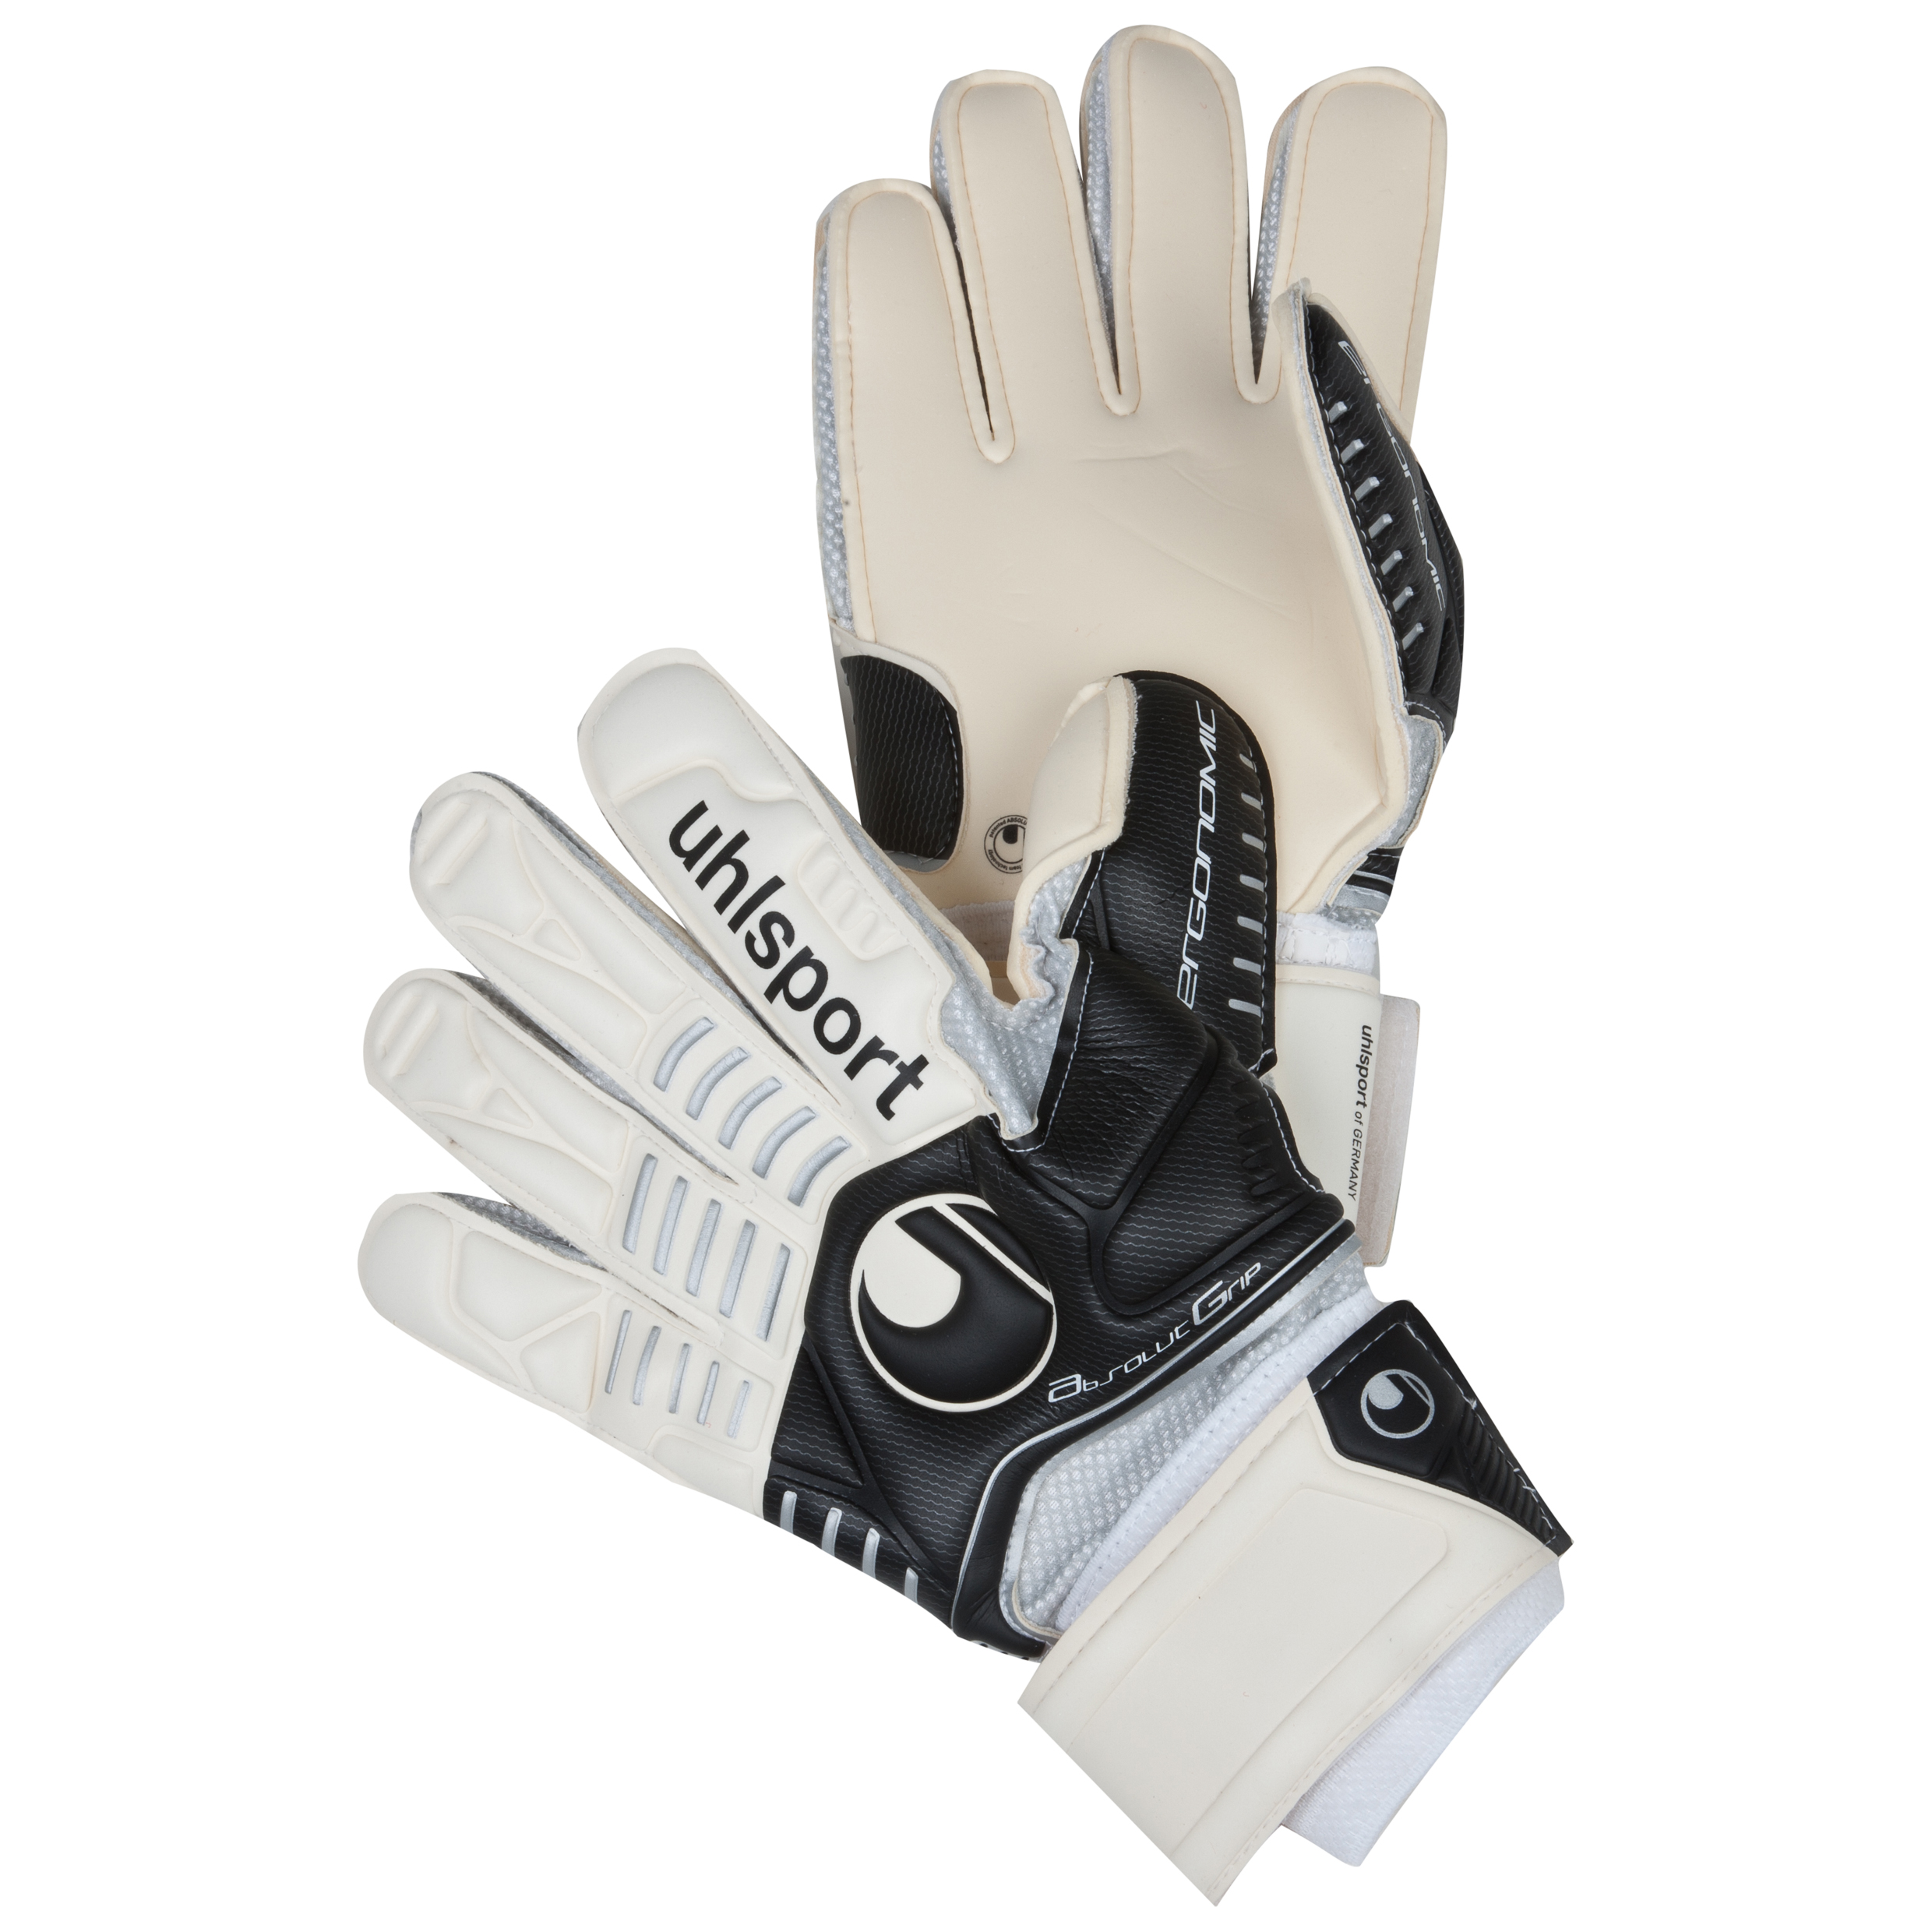 Uhlsport Ergonomic Absolutgrip Goalkeeper Gloves - White/Black/Silver